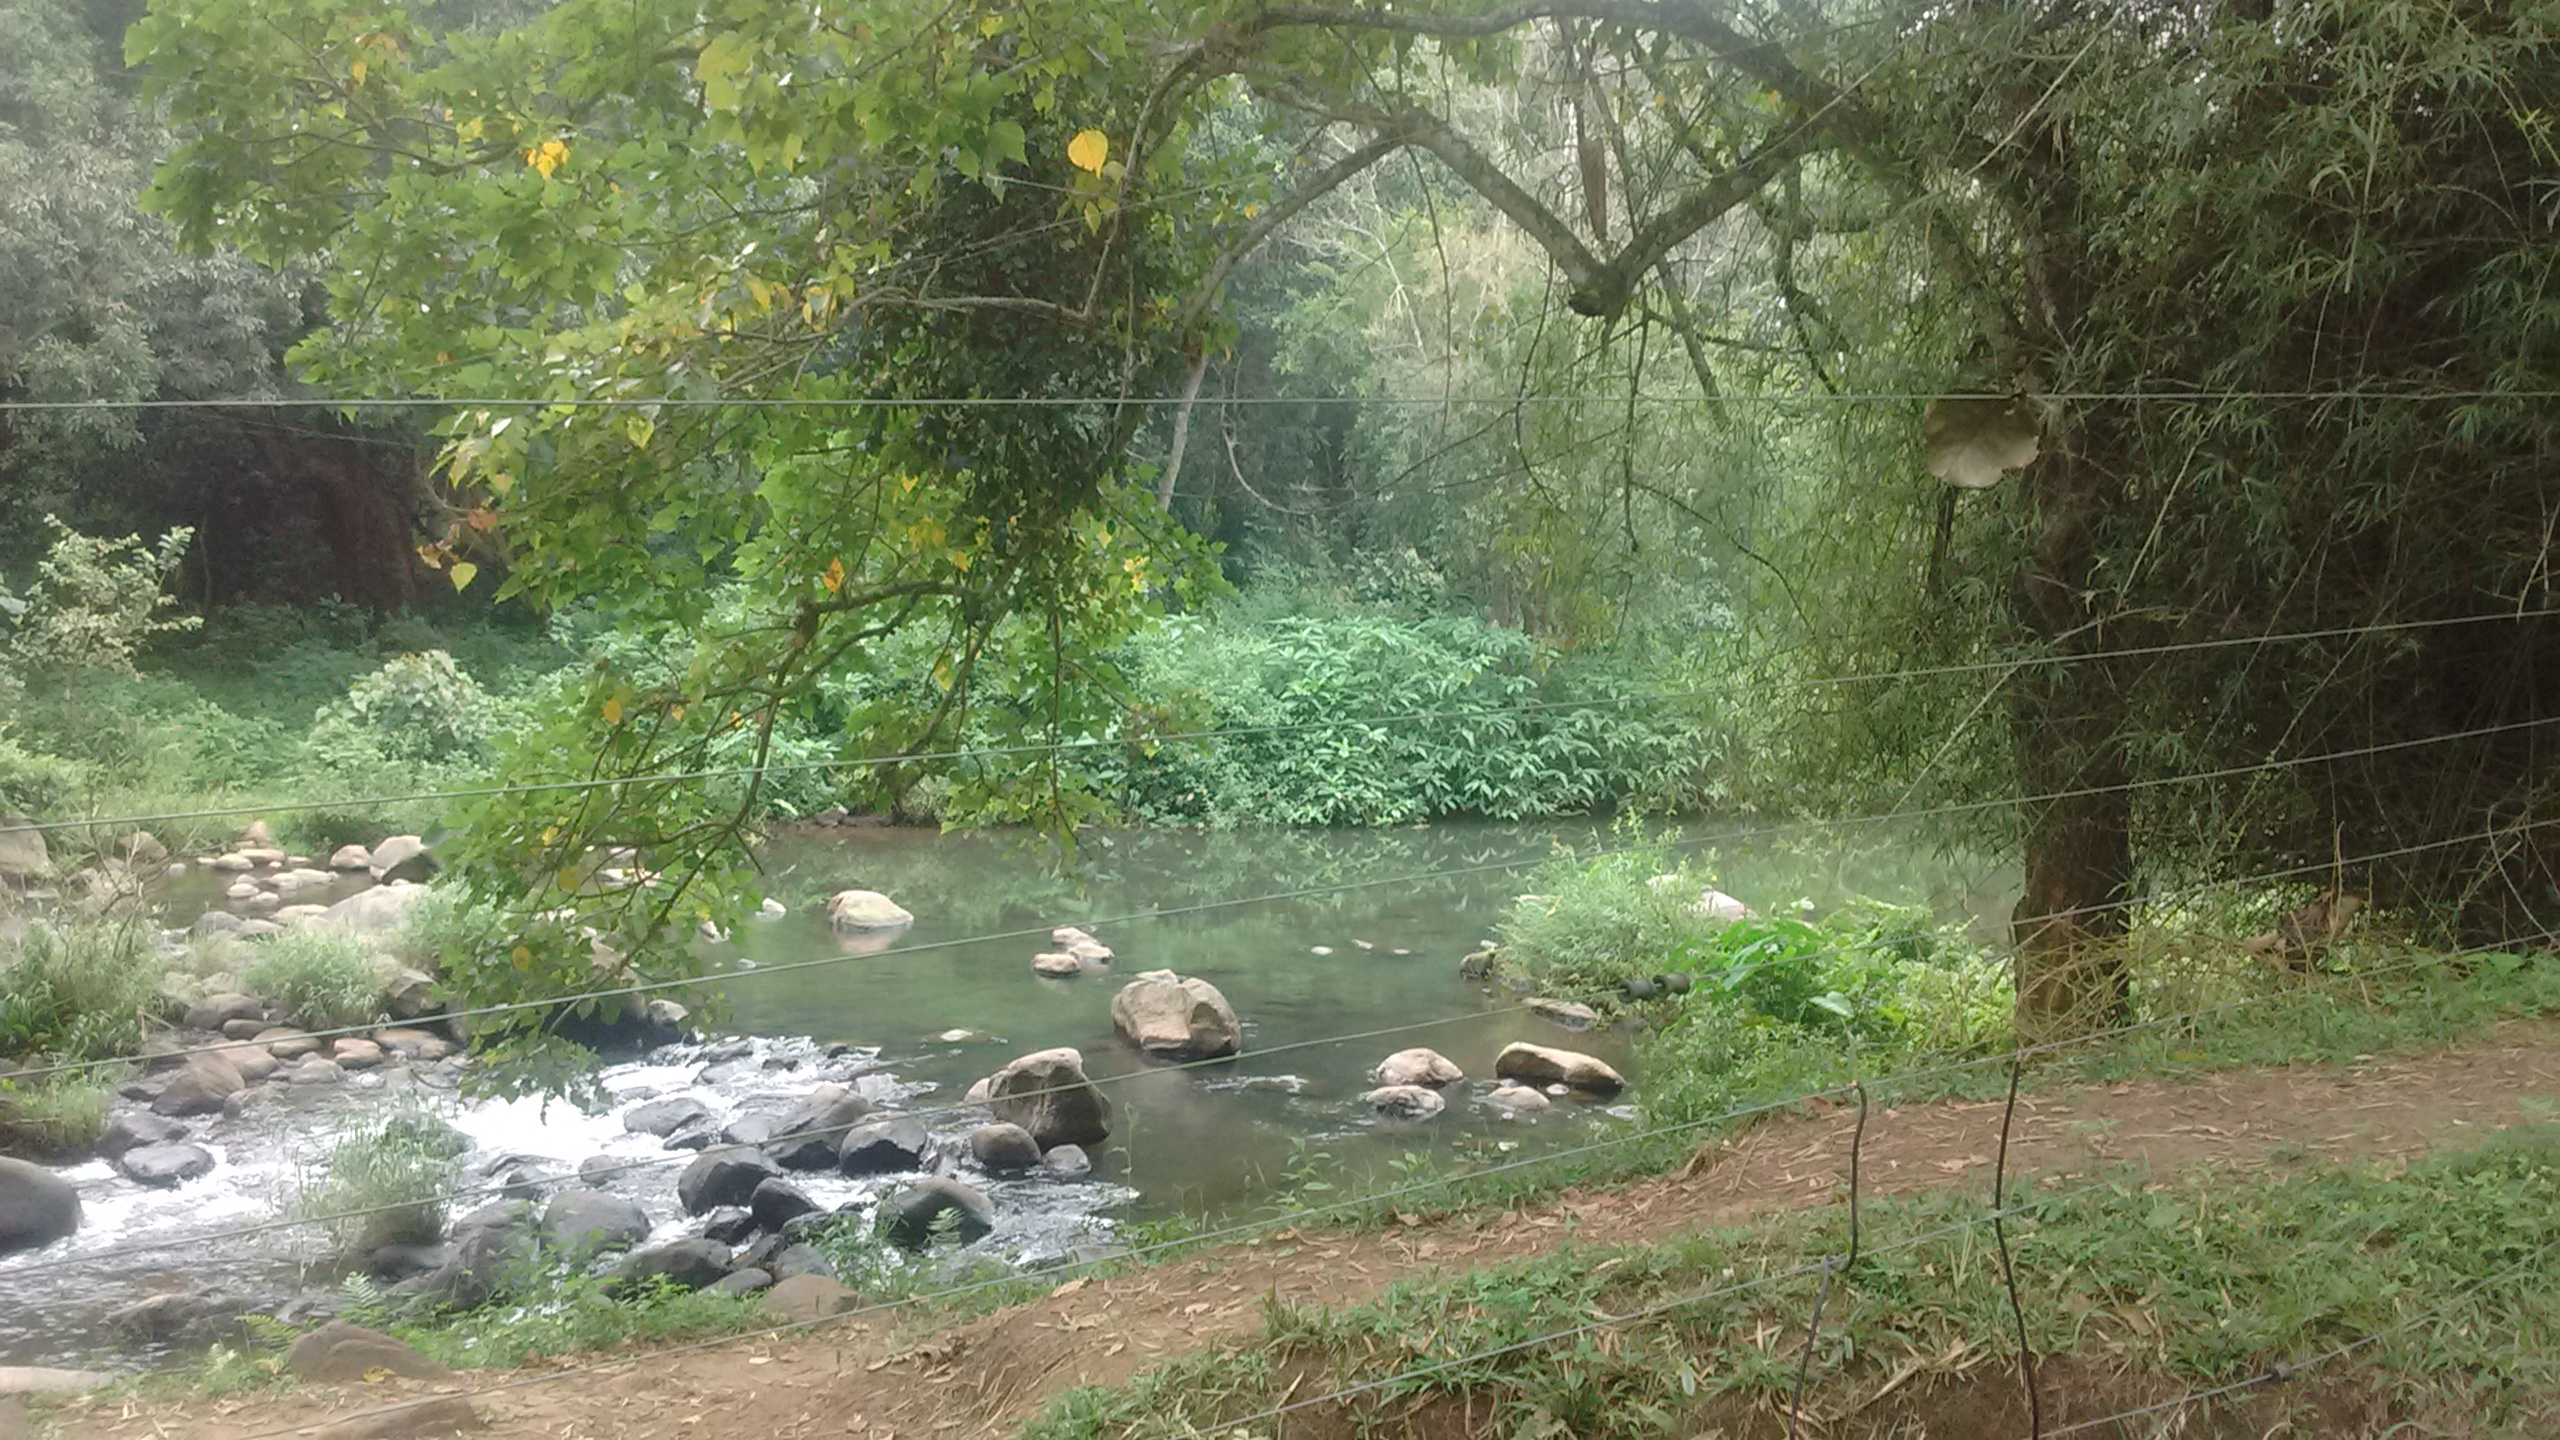 A river dividing a plantation in Gudalur from the elephant camp at Mudumalai Forest